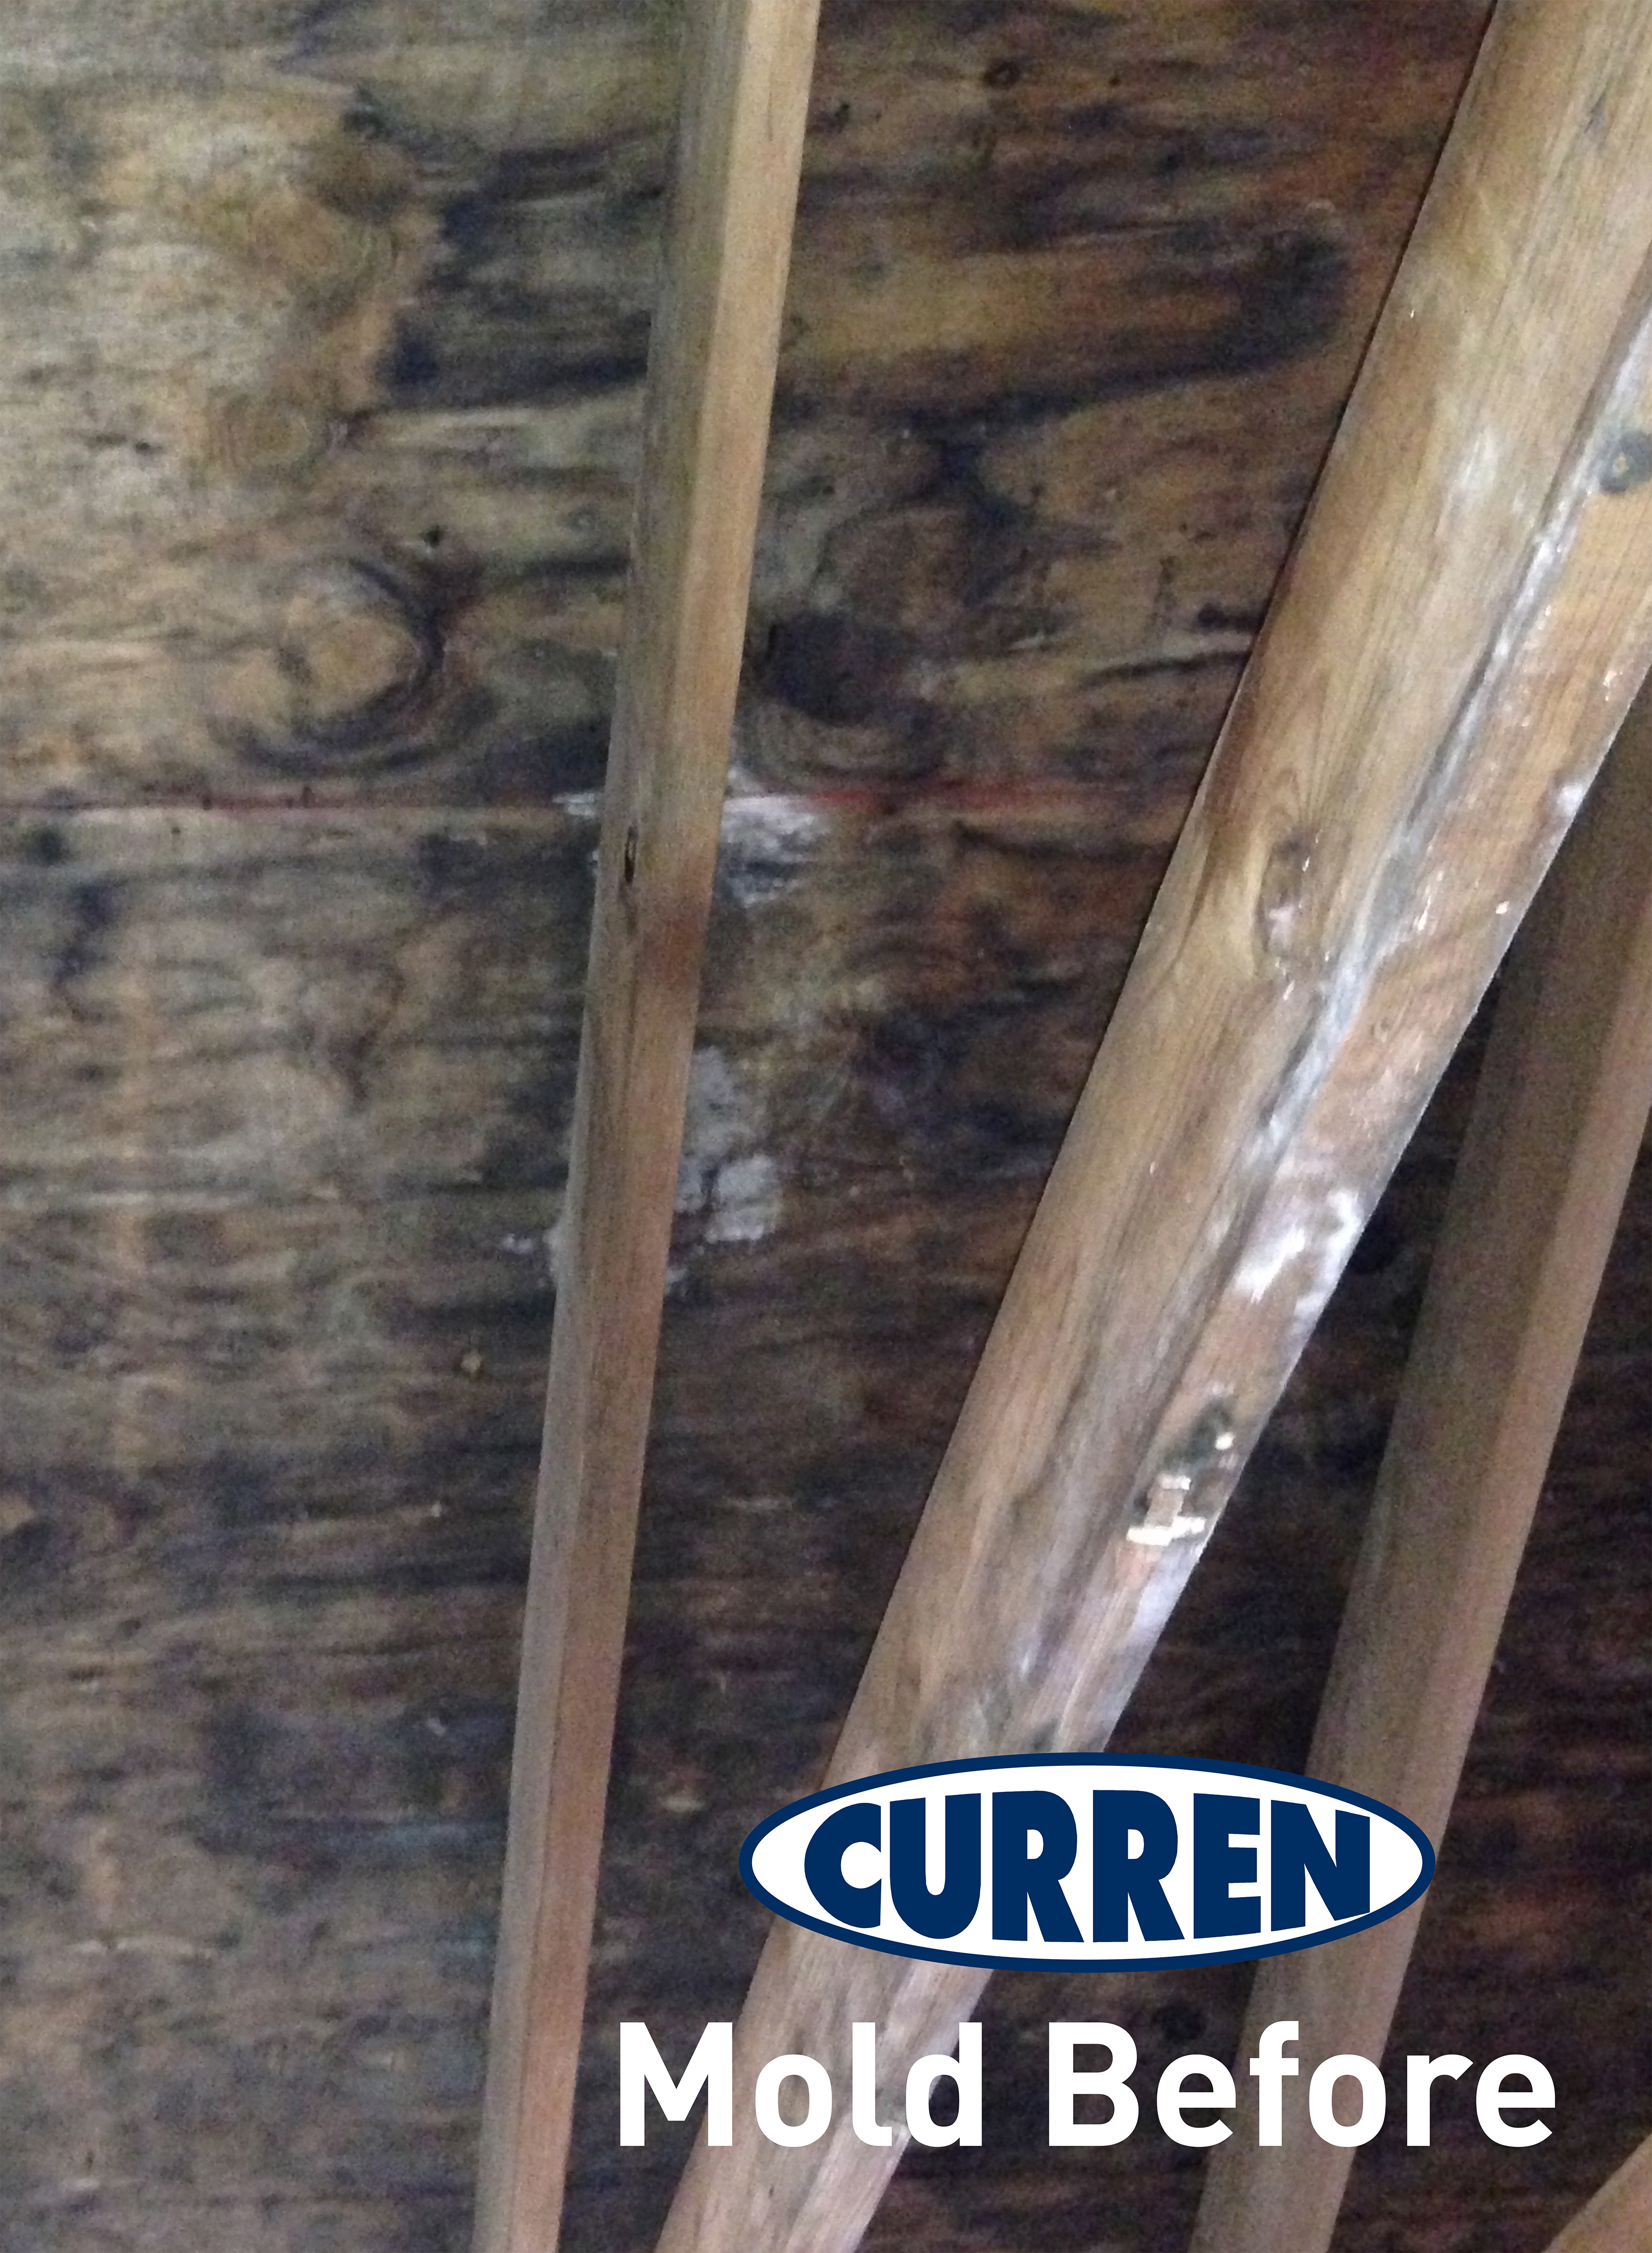 Curren_Before Mold_